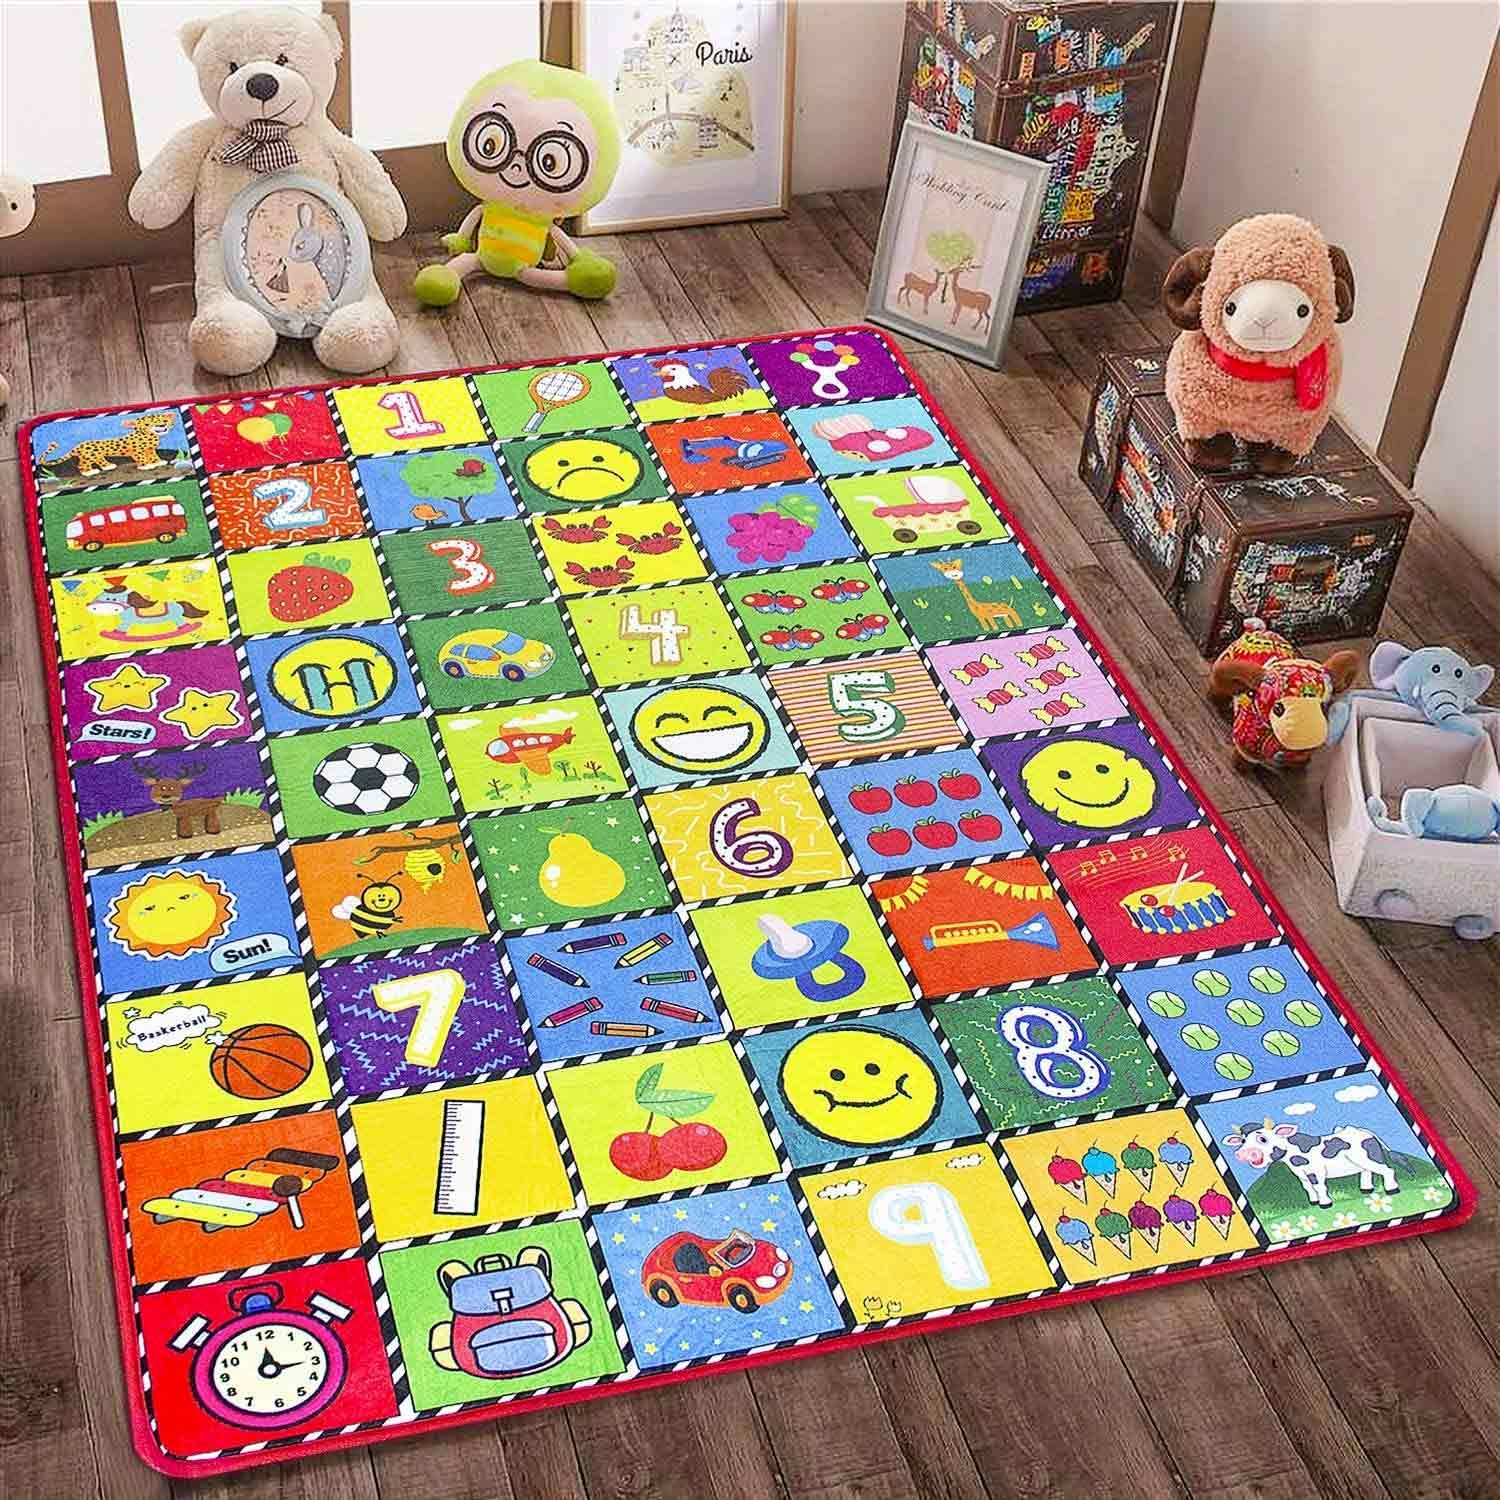 teytoy Baby Rug for Crawling - How Many Are There? Kids Area Rugs Educational Play Mat for Room Decor